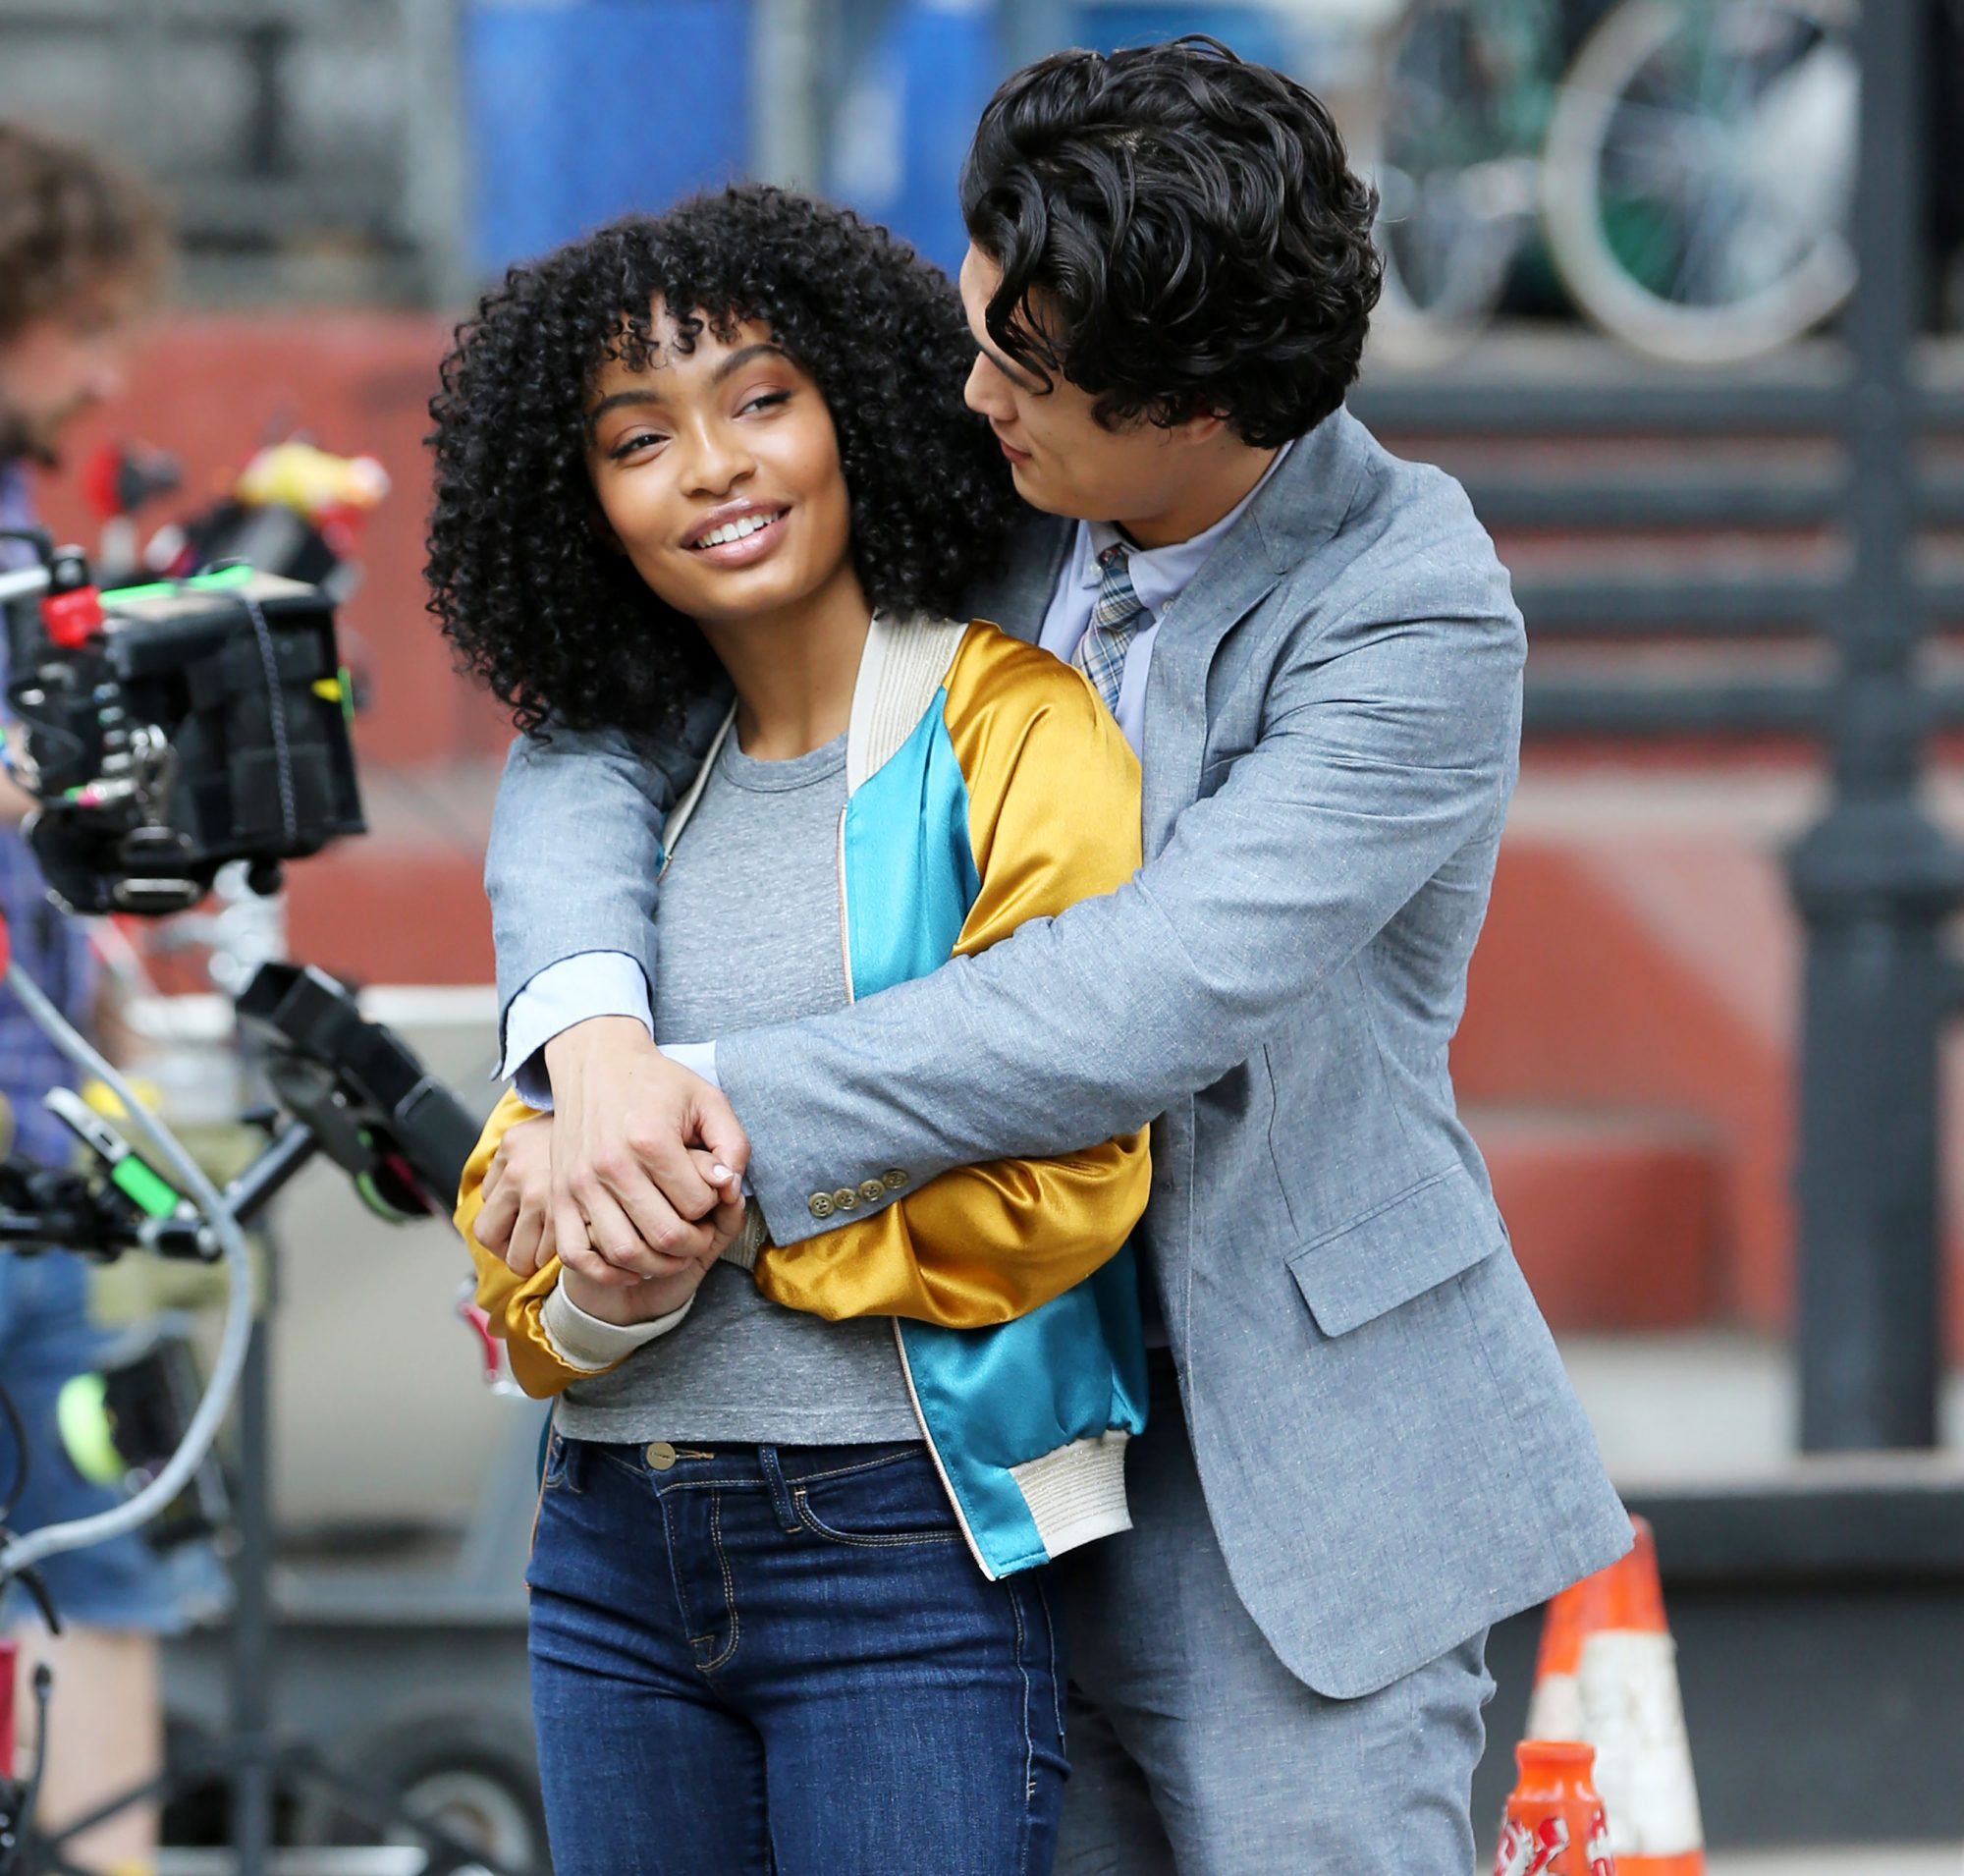 EXCLUSIVE: Actress Yara Shahidi Is Wrapped In The Arms Of Co Star Charles Melton Filming A Love Scene For The Sun Is Also A Star In Chinatown New York